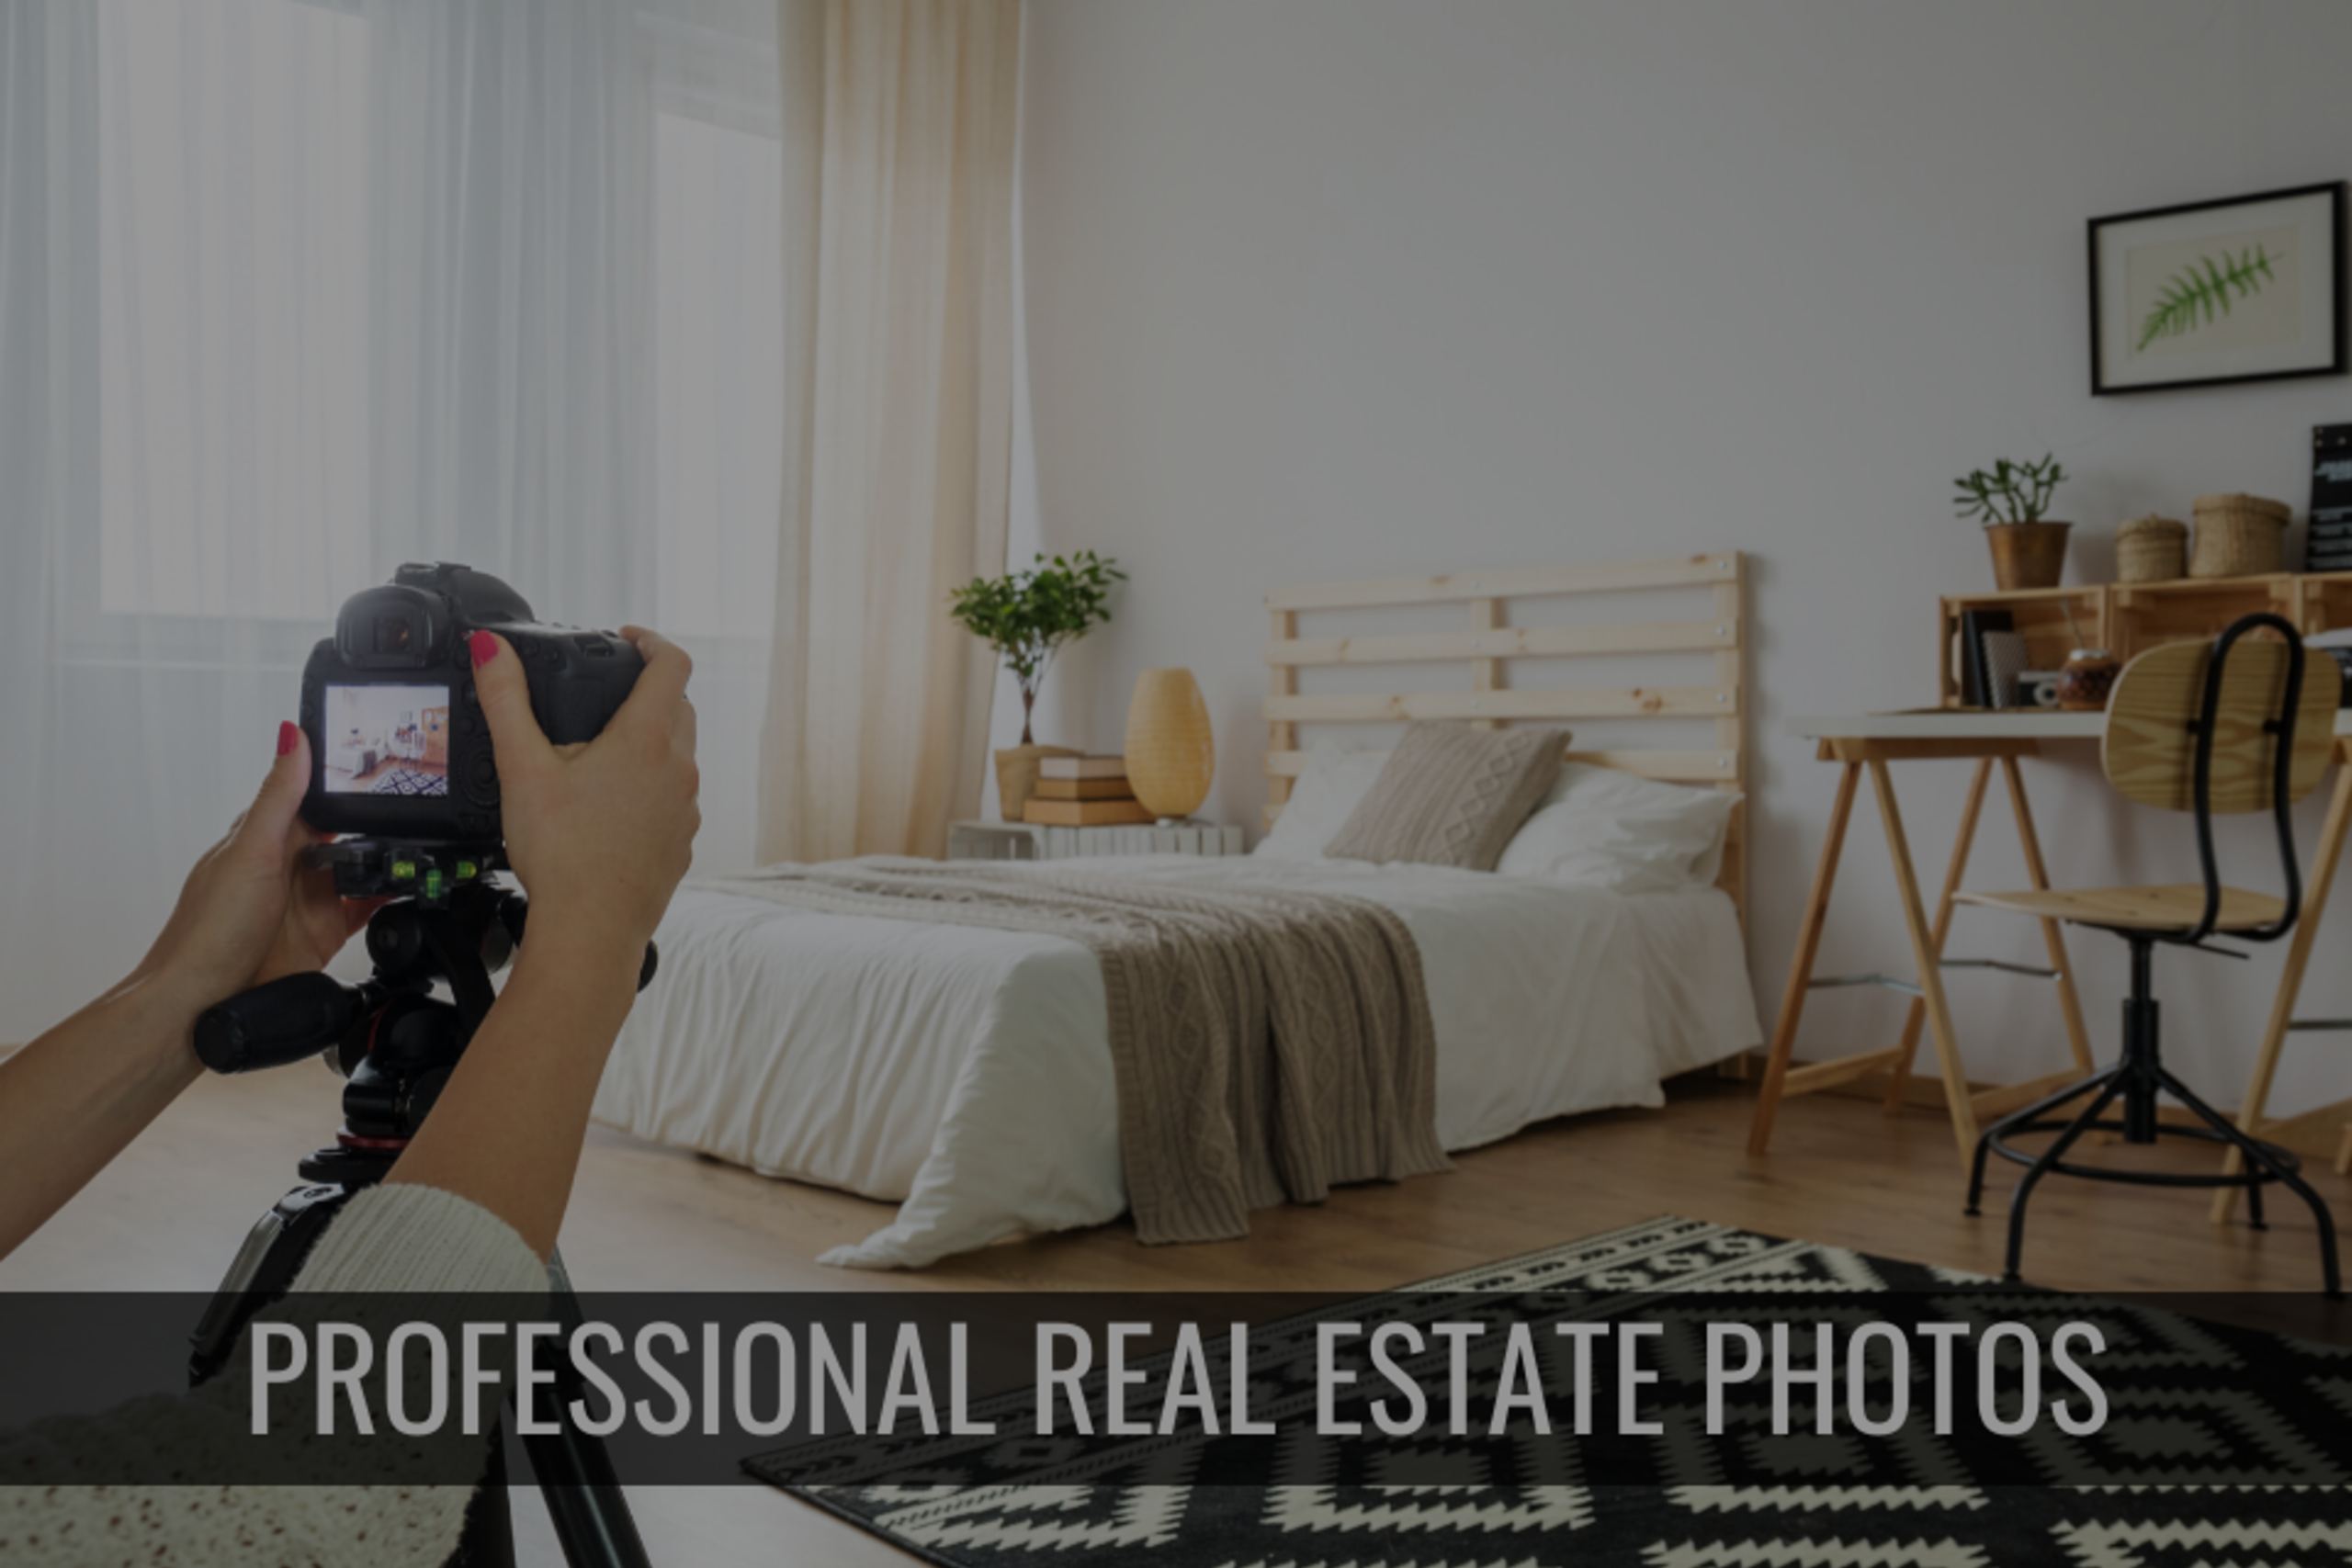 Why do Homes Listed with Professional Real Estate Photos Sell Quicker and For More Money?